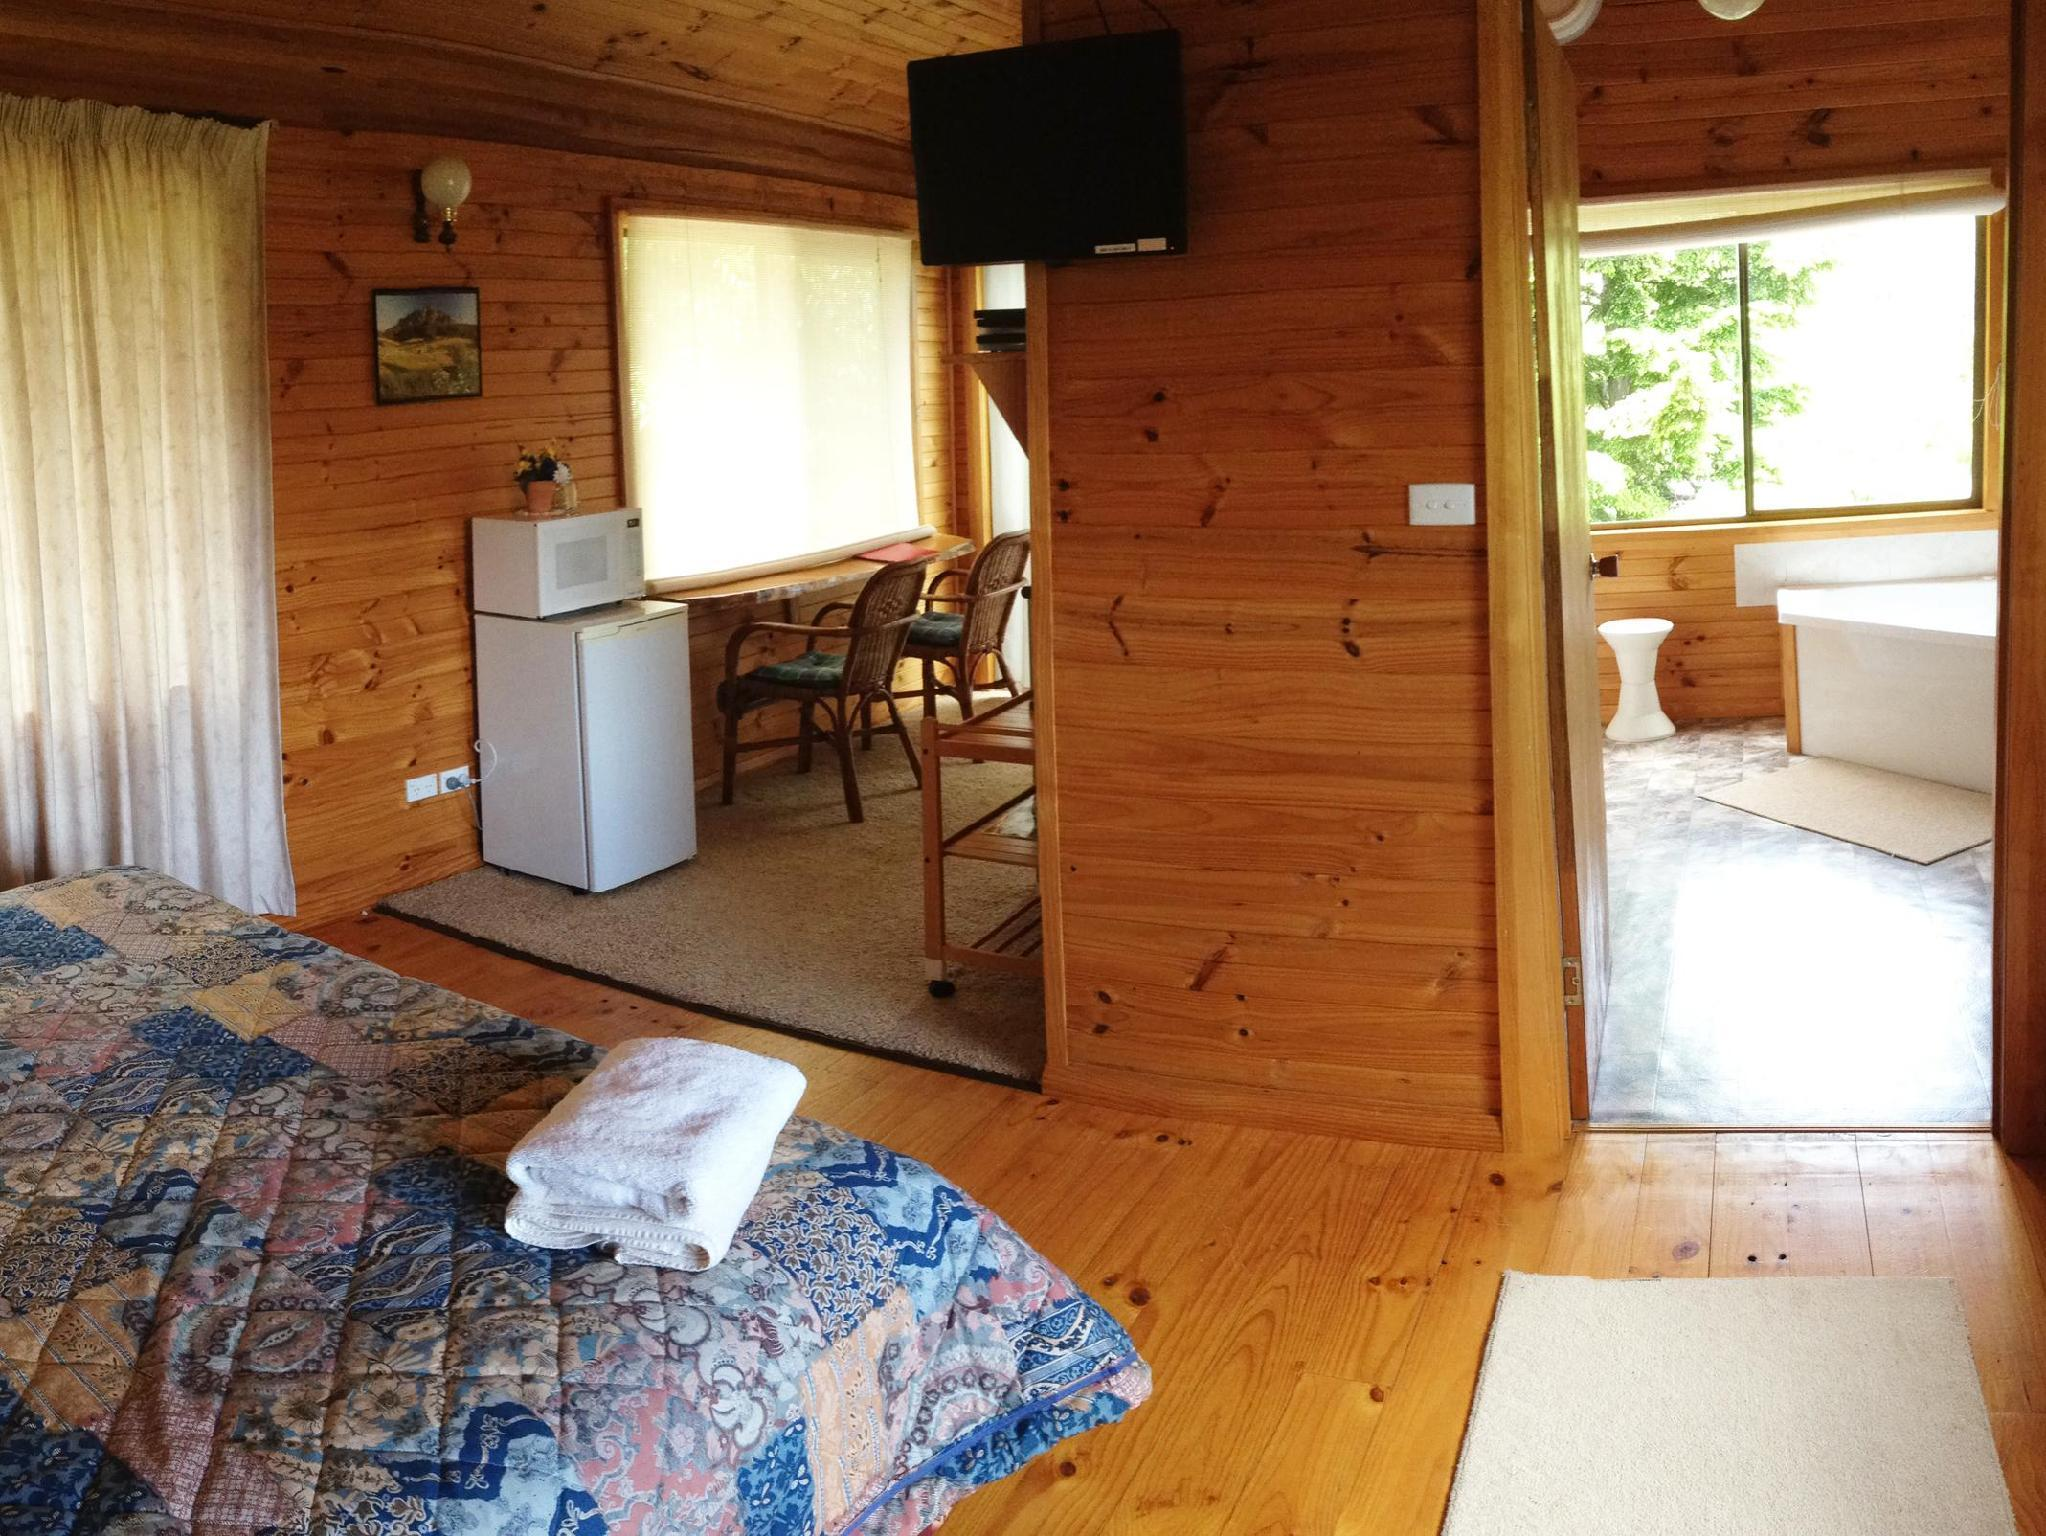 Aaa Granary Accommodation The Last Resort Best Price On Silver Ridge Retreat In Cradle Mountain Reviews